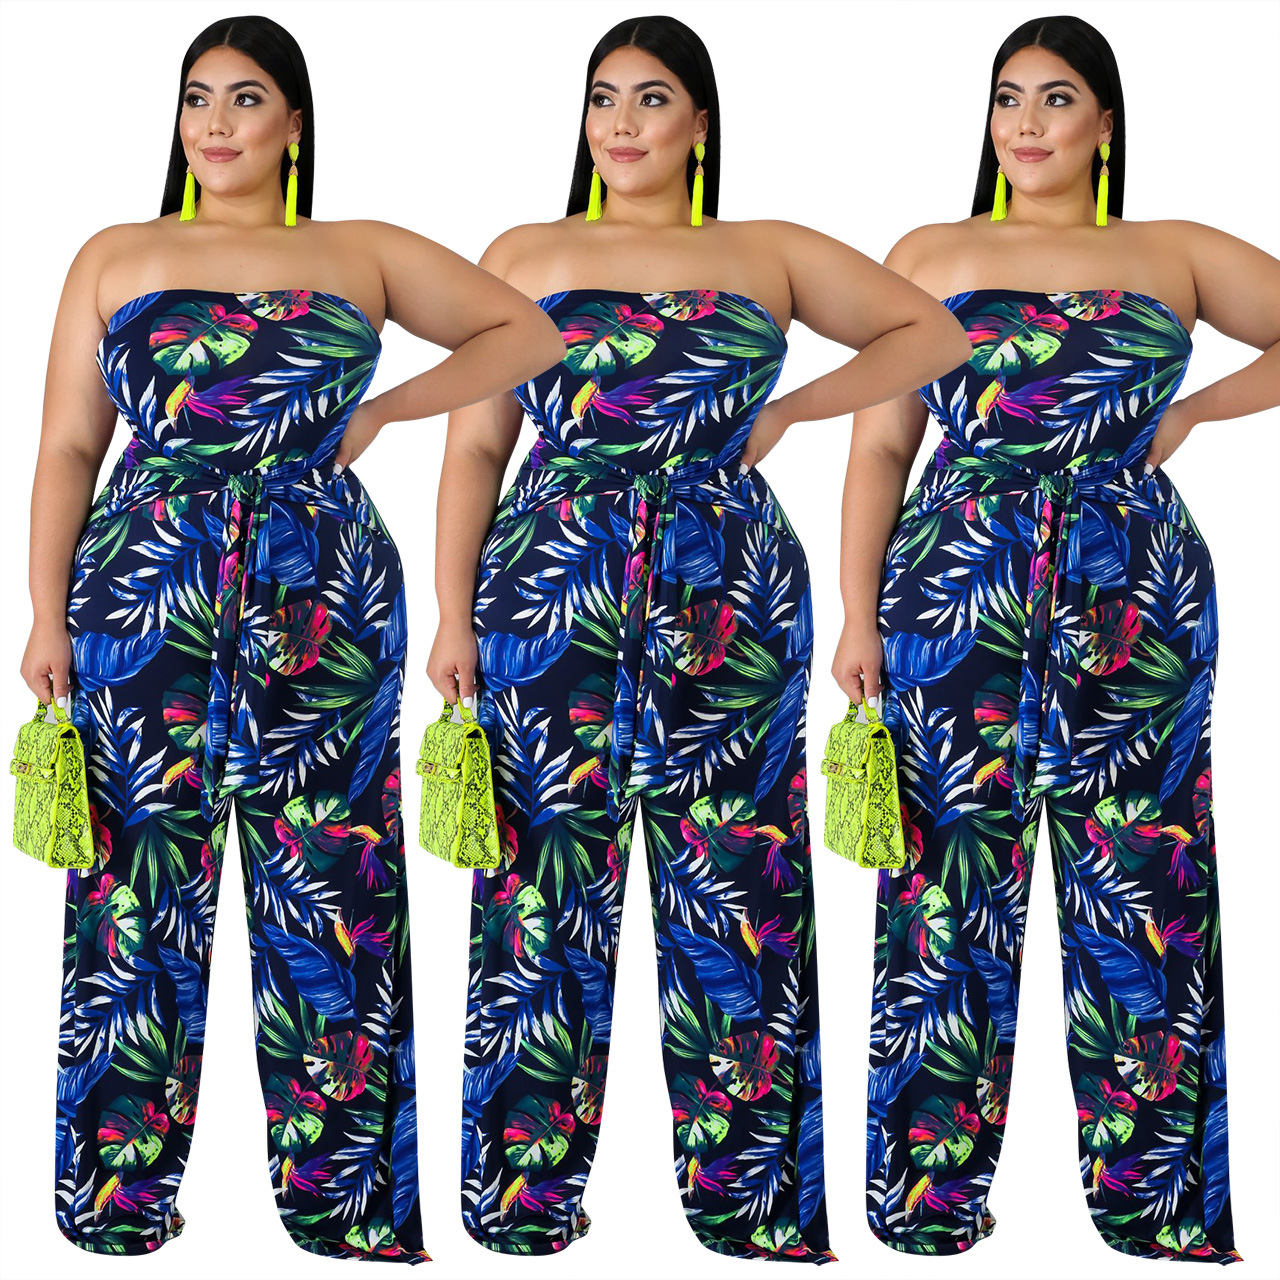 2019 new arrival sexy fashion style women printing plus size long jumpsuit L-3XL